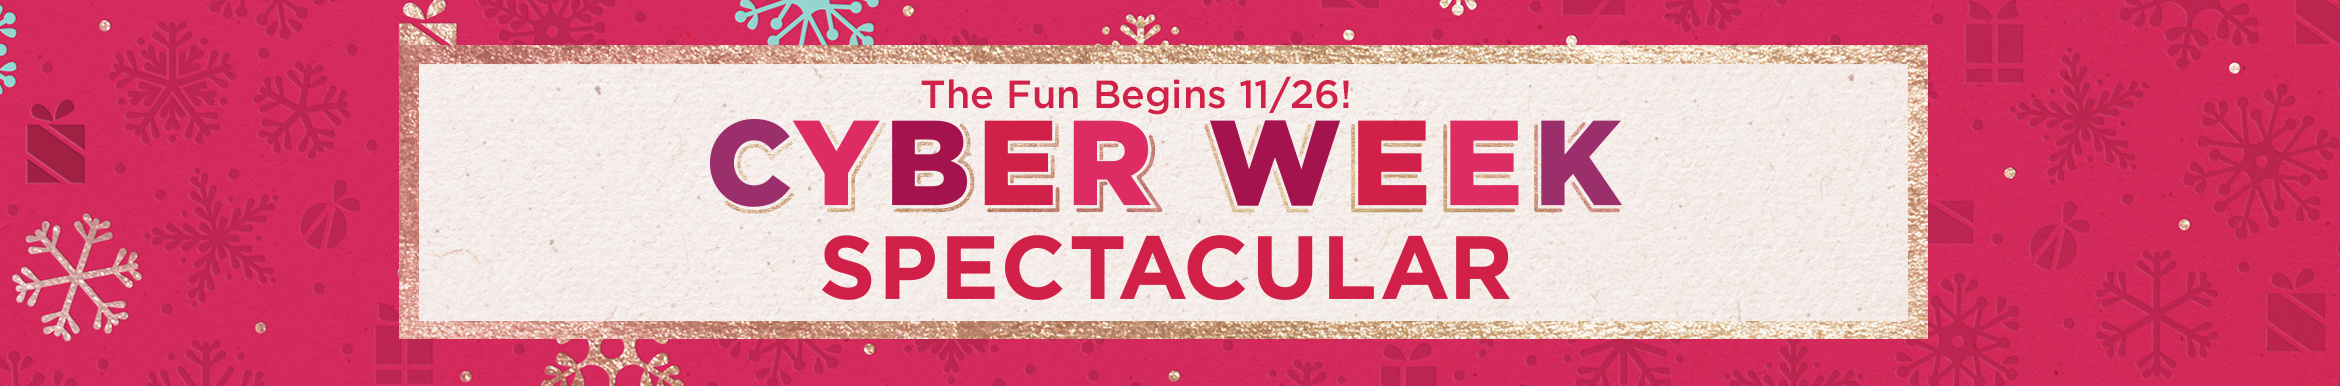 The Fun Begins 11/26! Cyber Week Spectacular